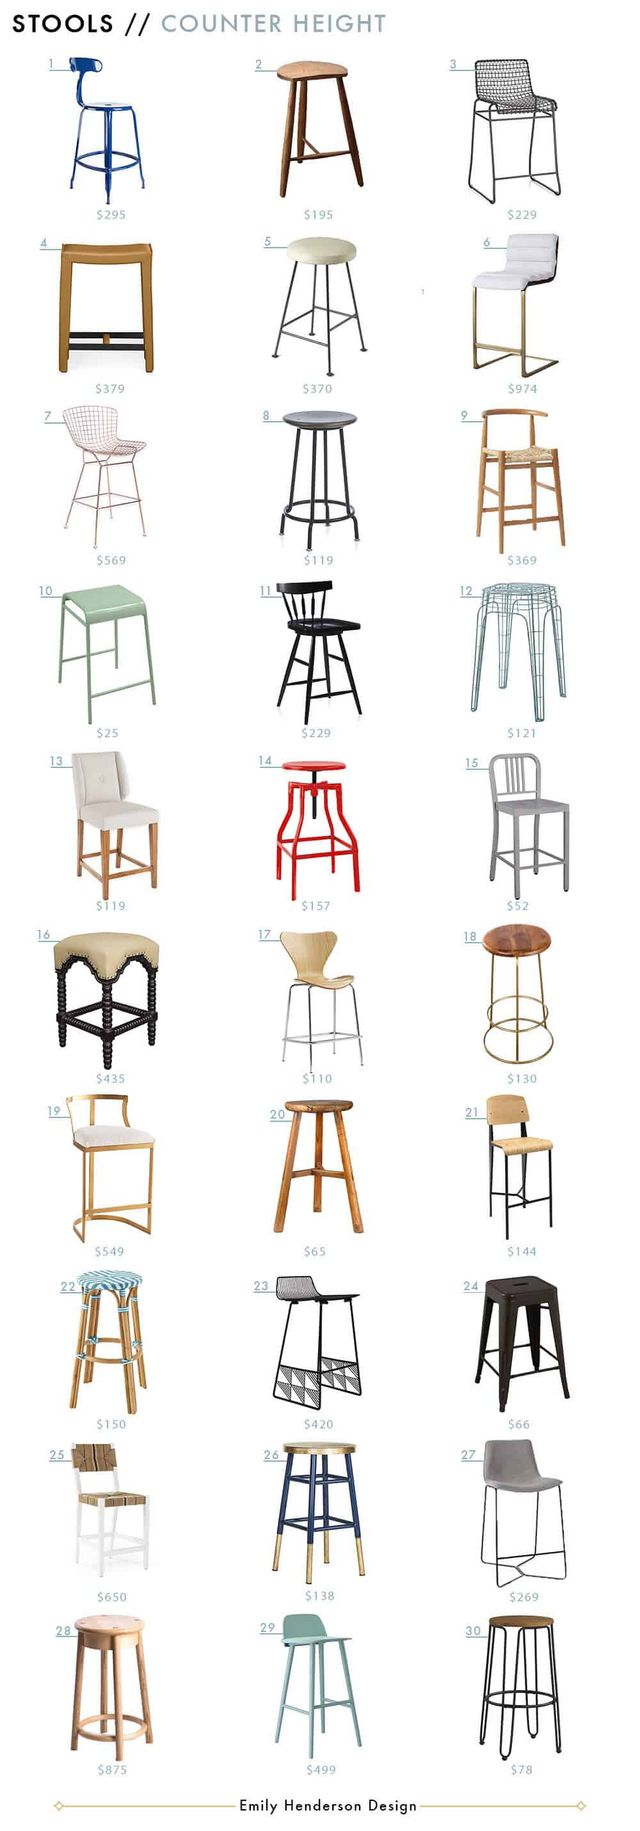 The Ultimate Counter Amp Bar Stool Roundup Emily Henderson